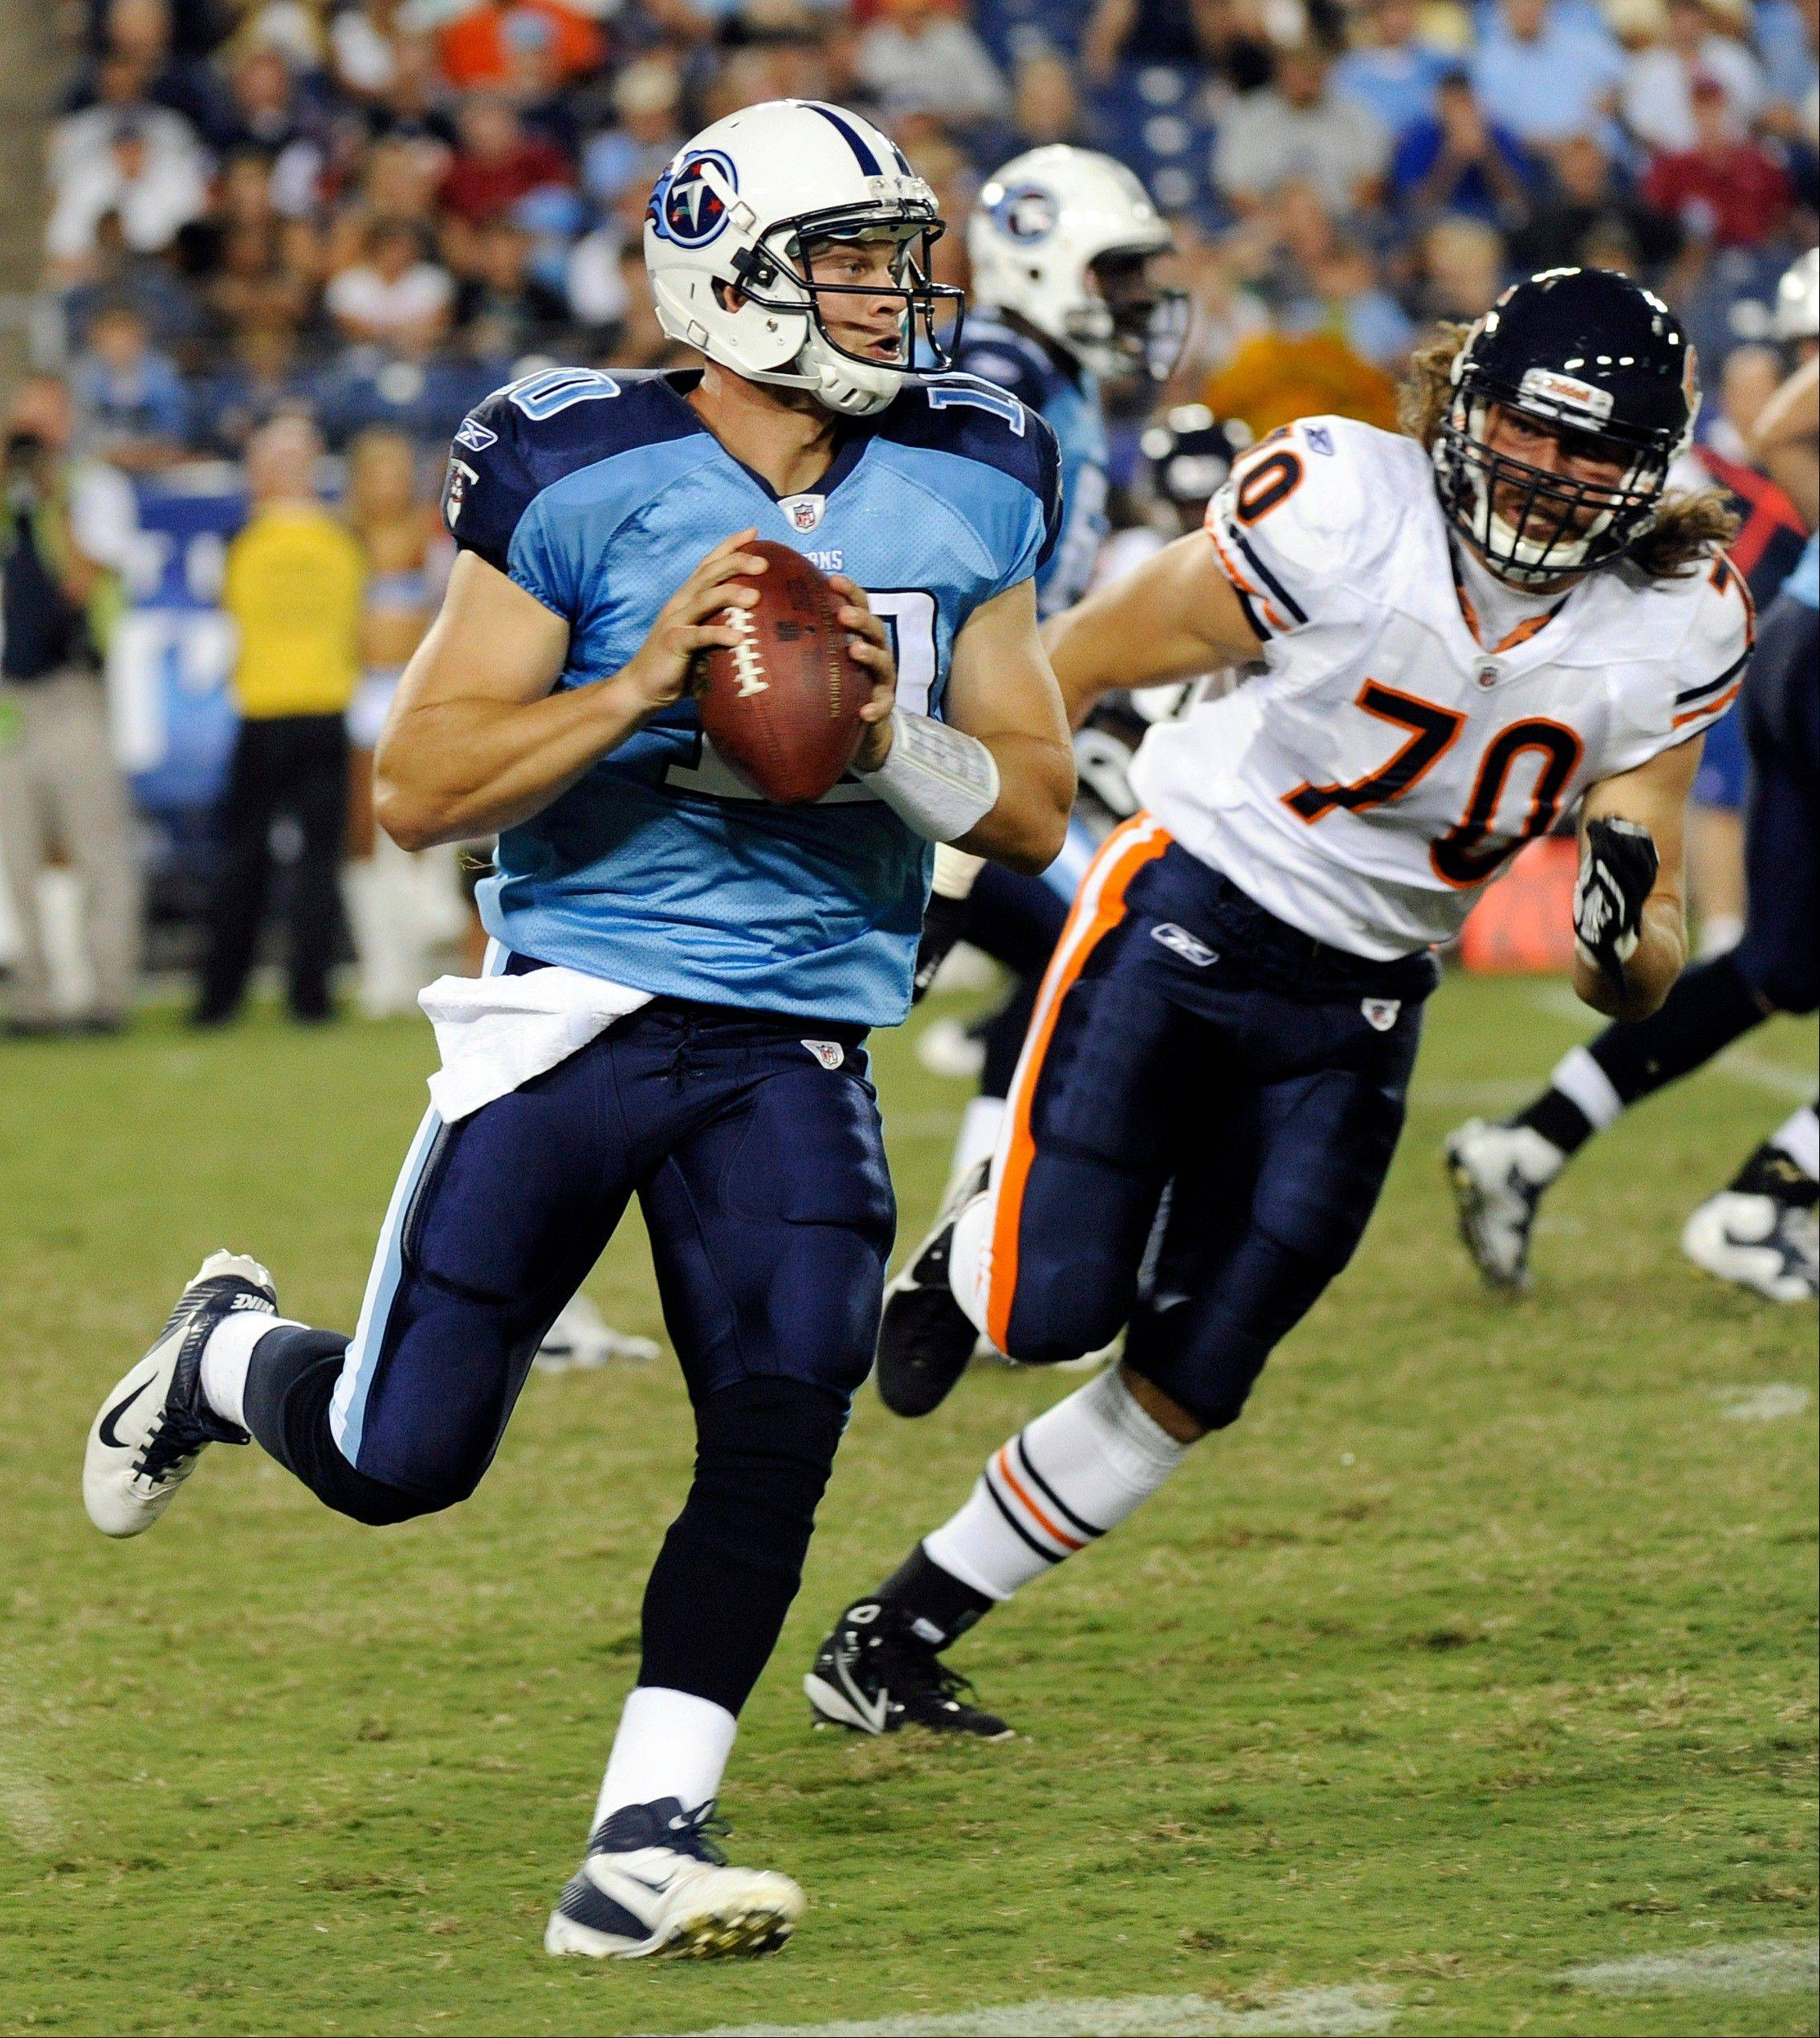 Defensive end Nick Reed chases Tennessee quarterback Jake Locker during the Bears' third preseason game on Aug. 27. Reed is hoping for a good showing Thursday against Cleveland to secure a spot on the team's 53-man roster.